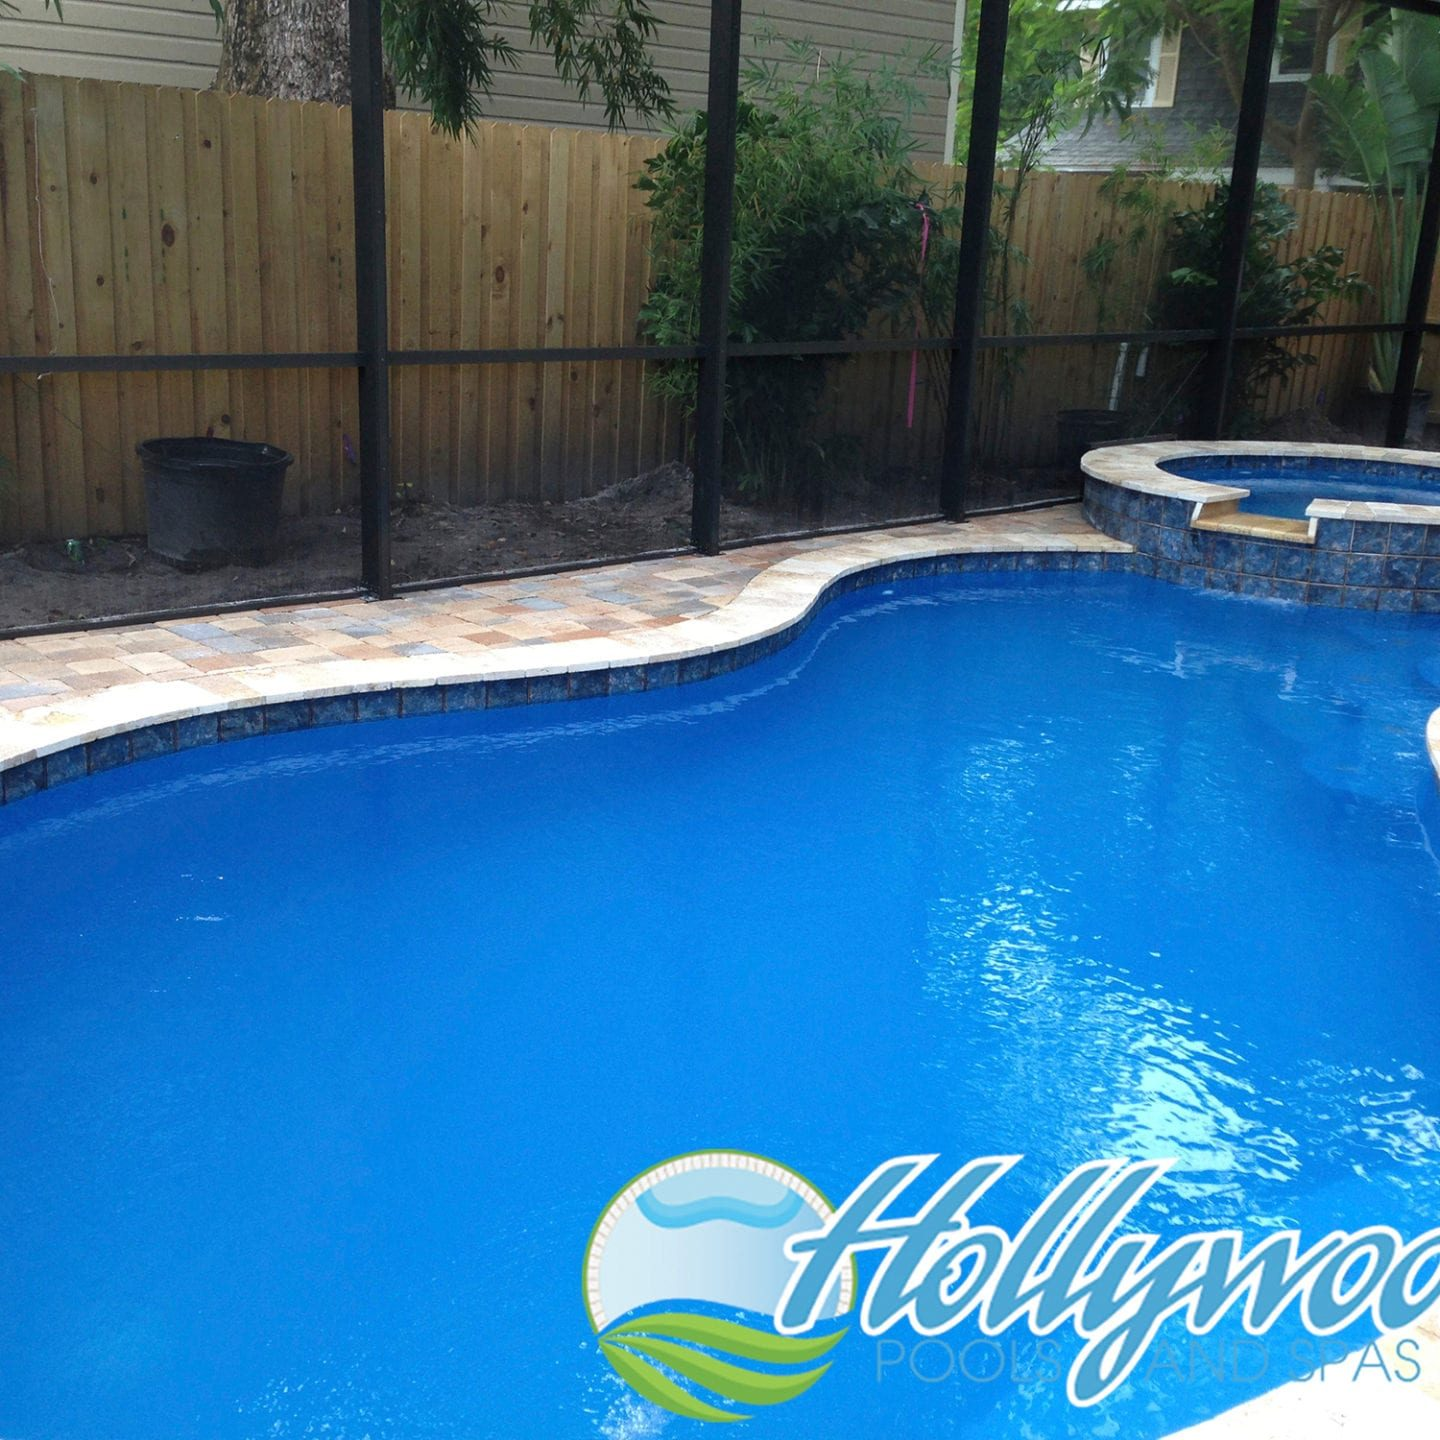 Home Hollywood Pools And Spas Replacing A Pool Light From The Deck Electrical Online Koty Swanson My